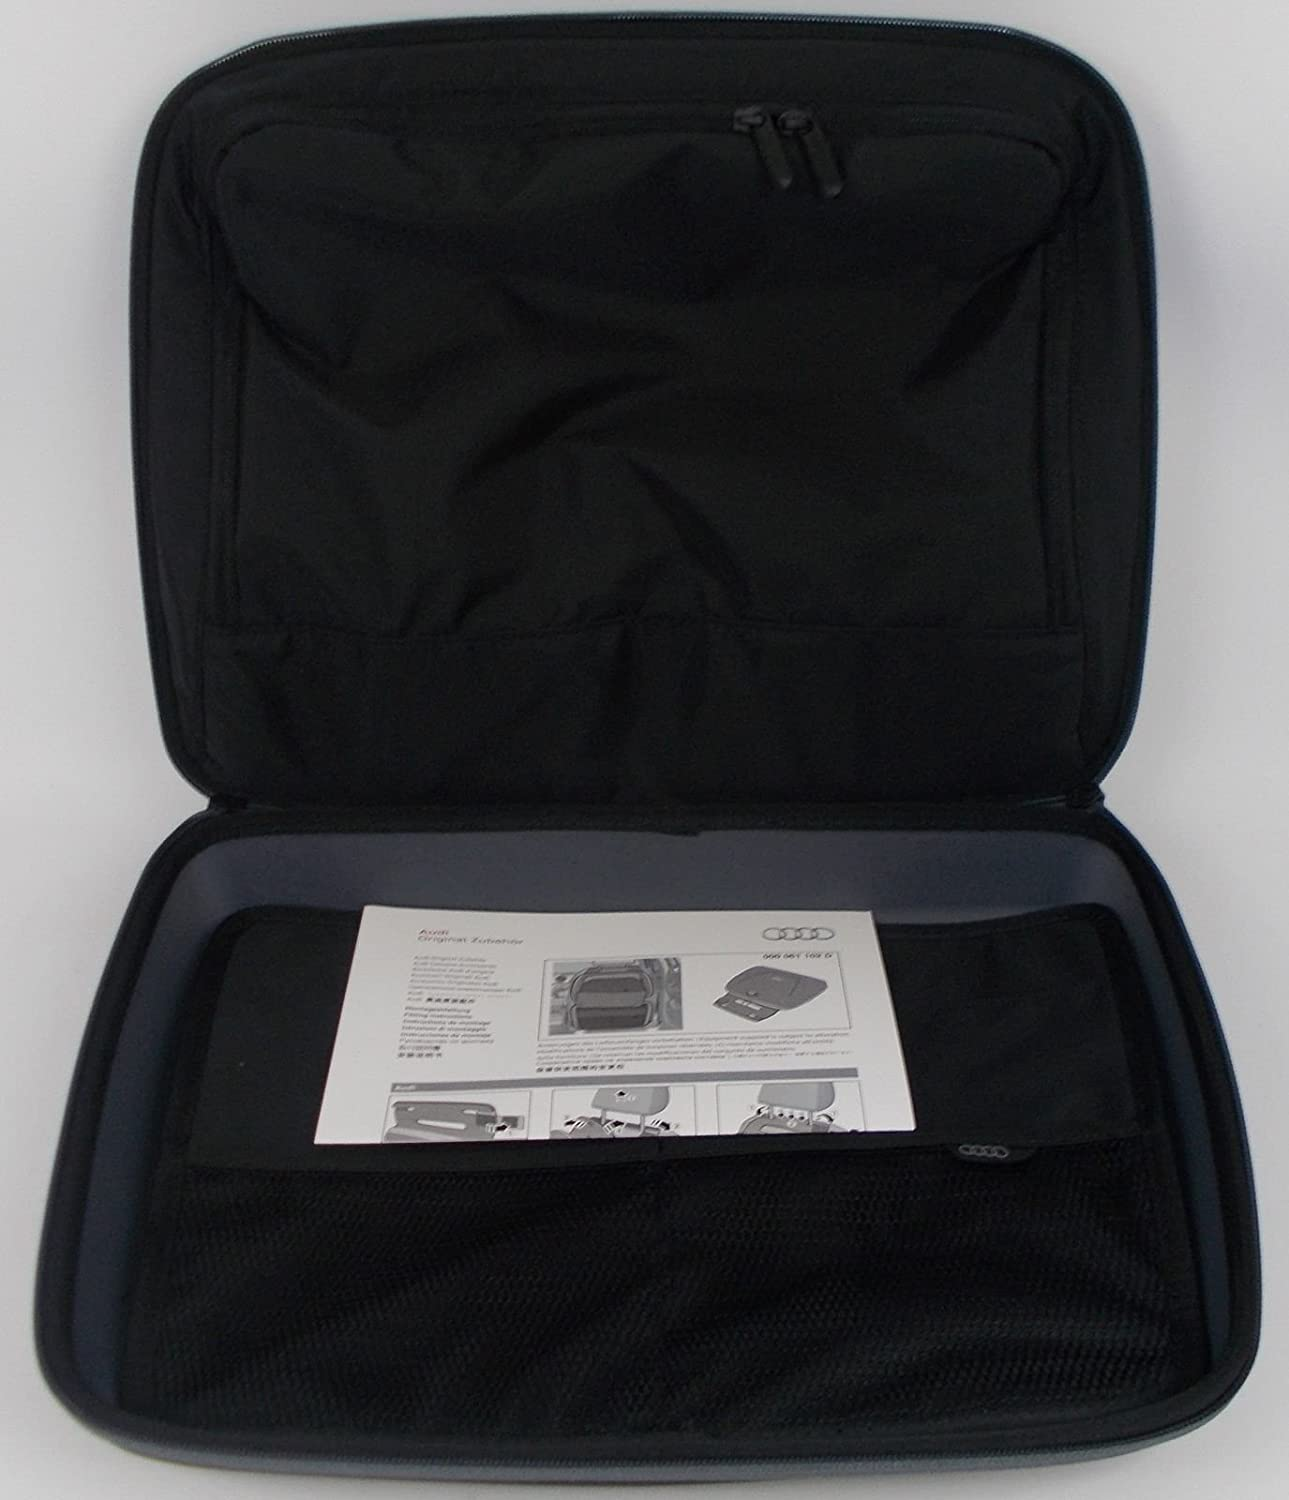 Audi Seat Backrest Storage Carry Bag 000061102D New Genuine Audi part